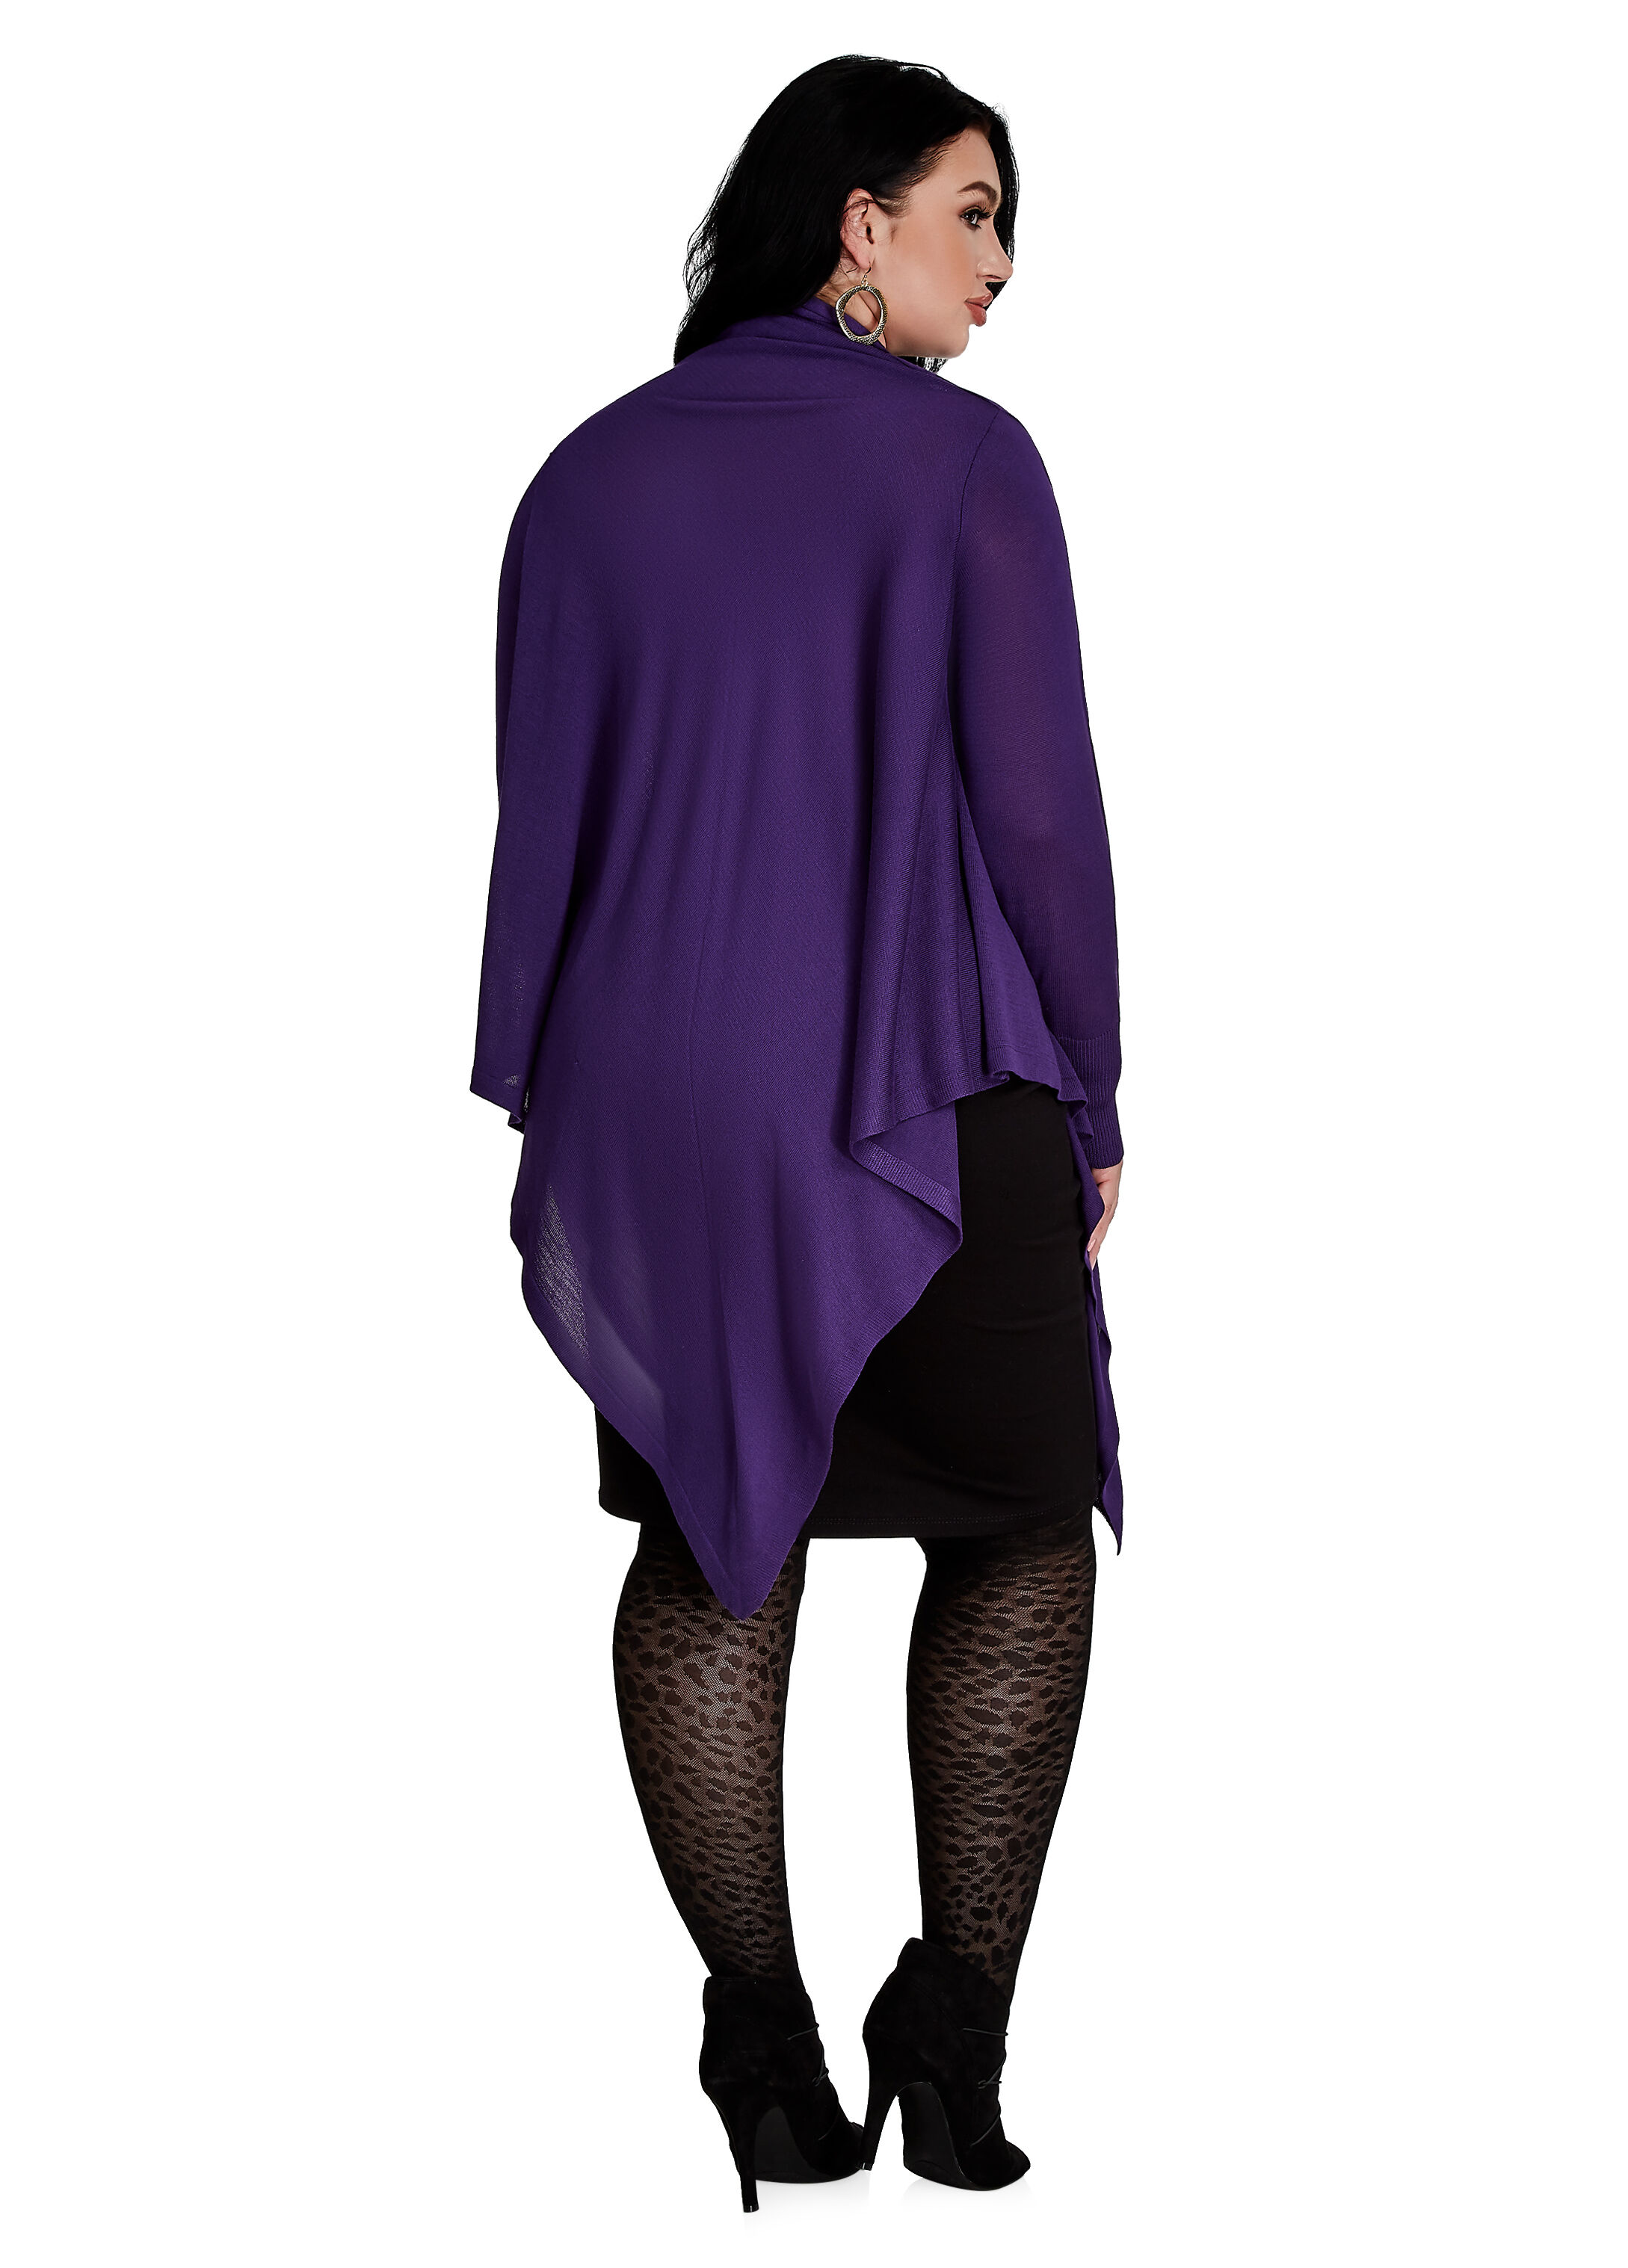 Plus size cowl neck sweater - long sleeve top